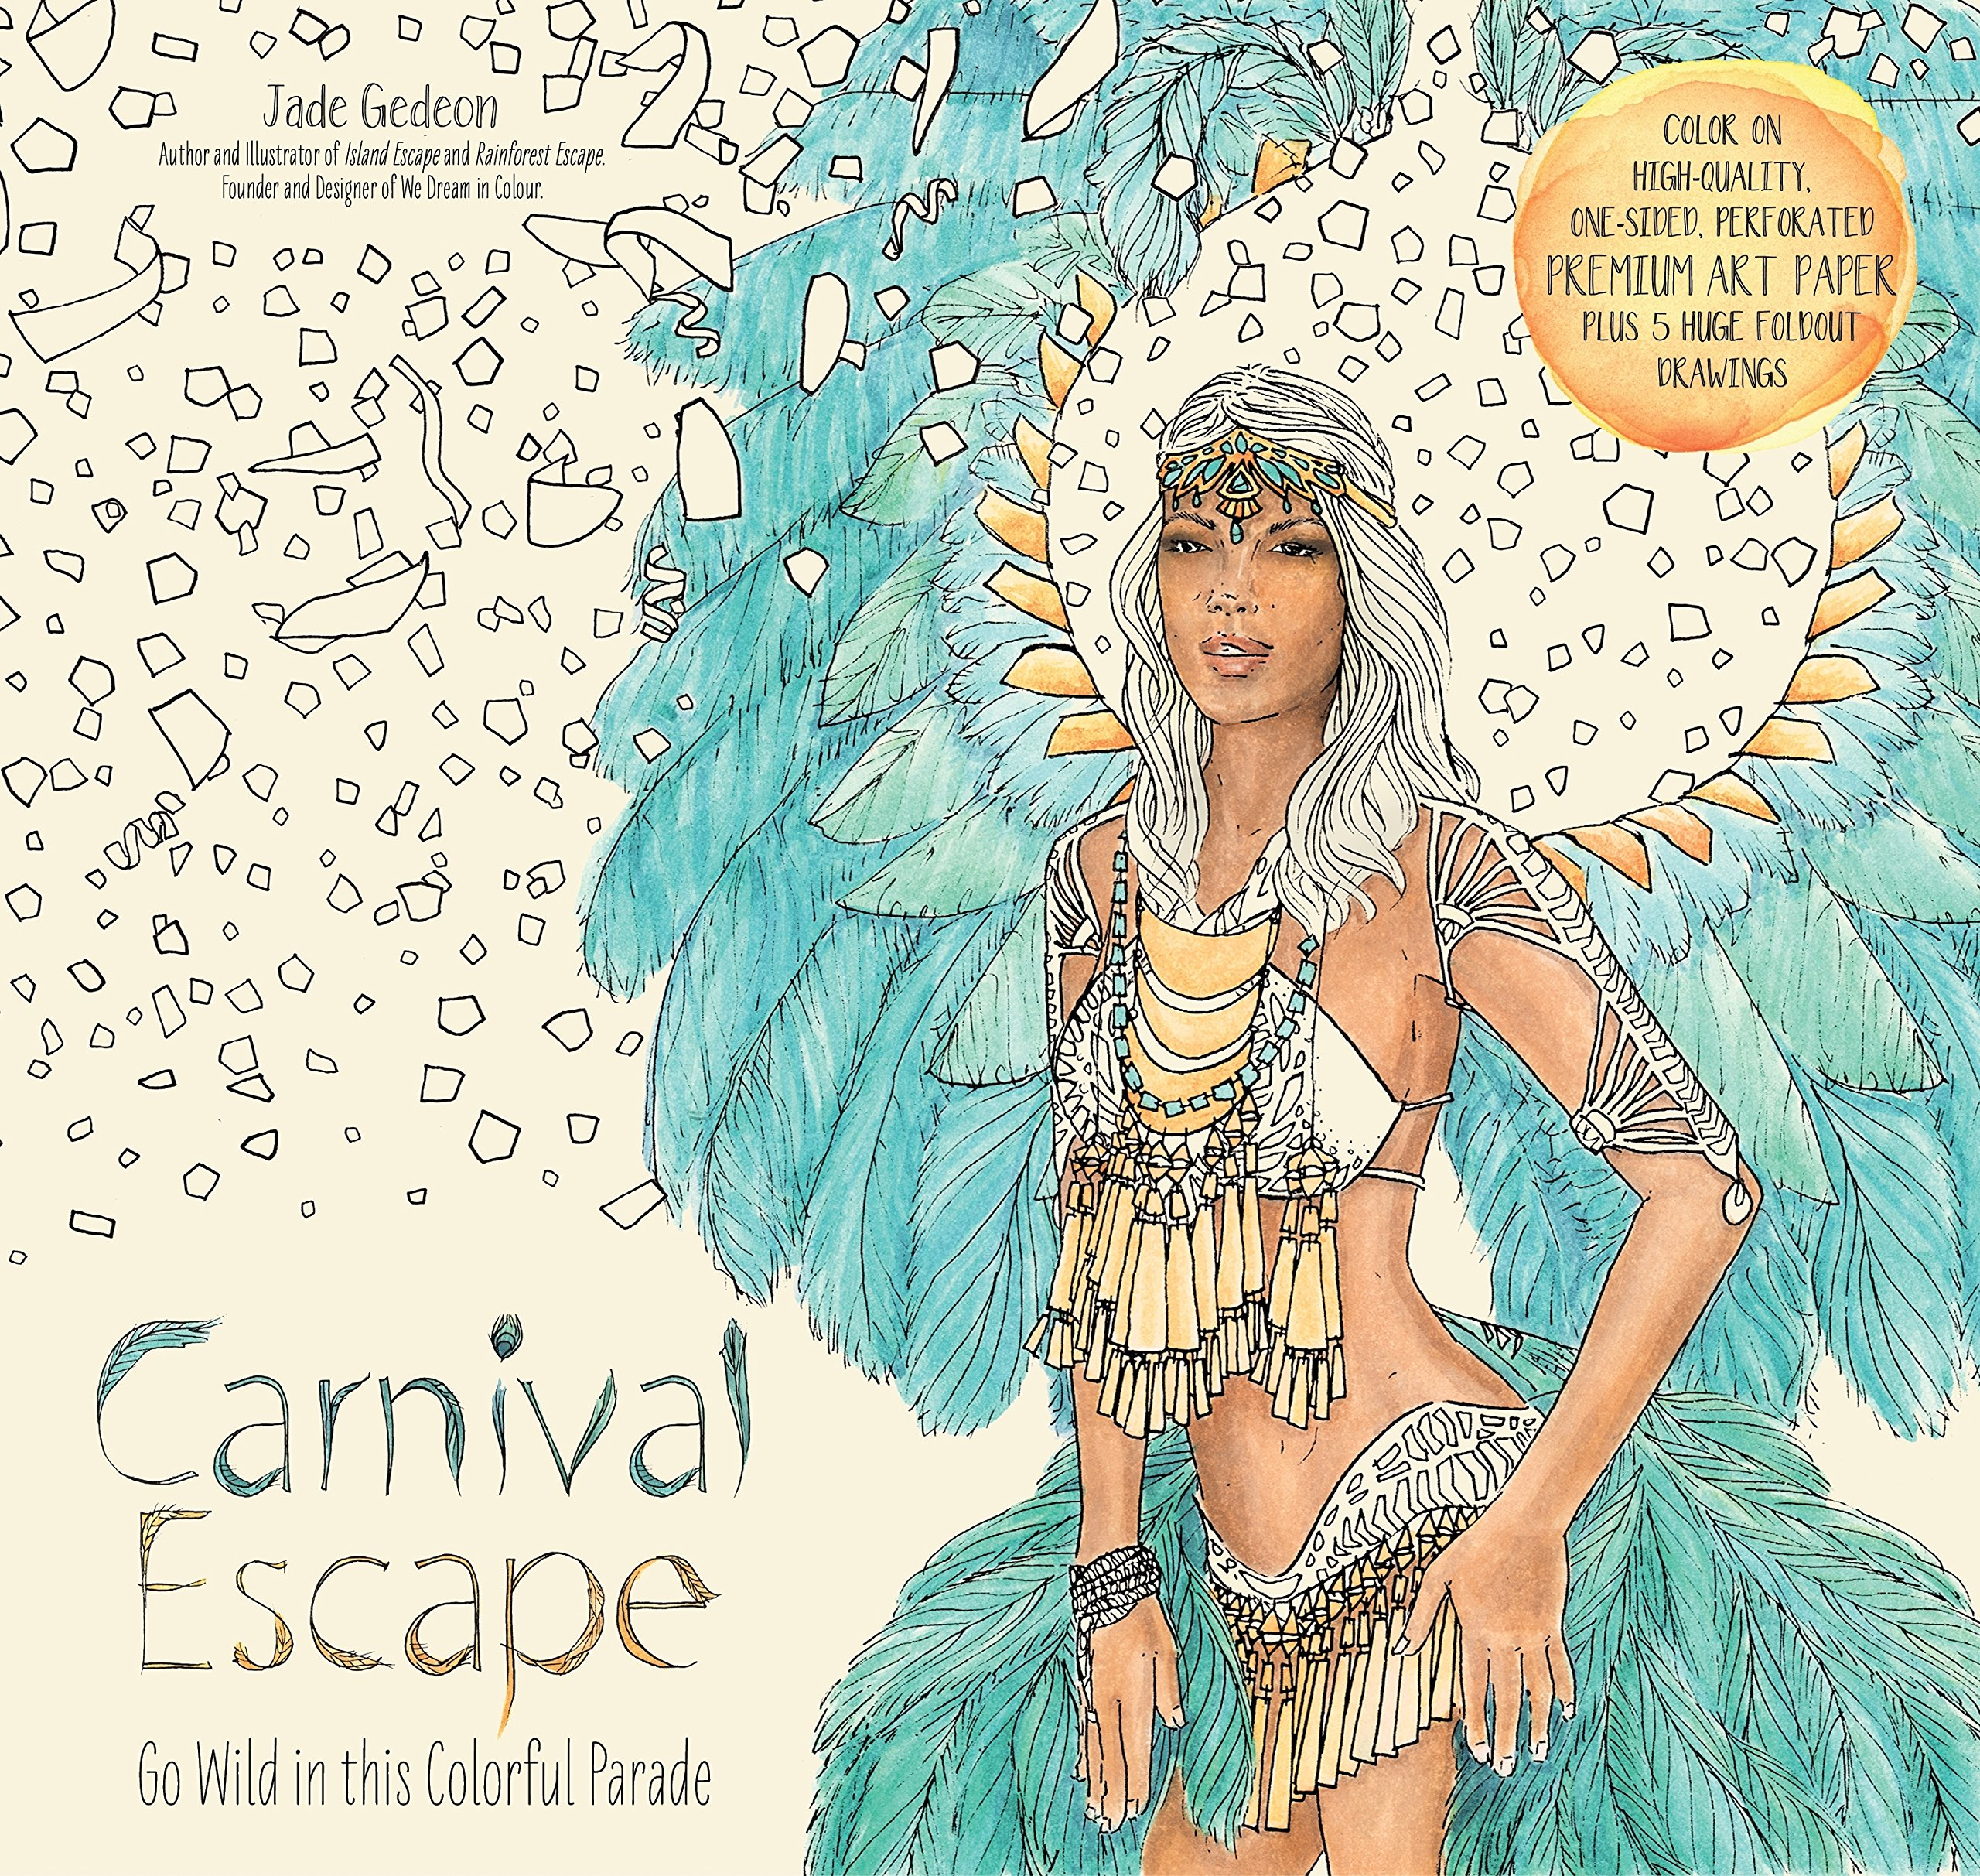 Carnival Escape Go Wild in this Colorful Parade Colouring Books